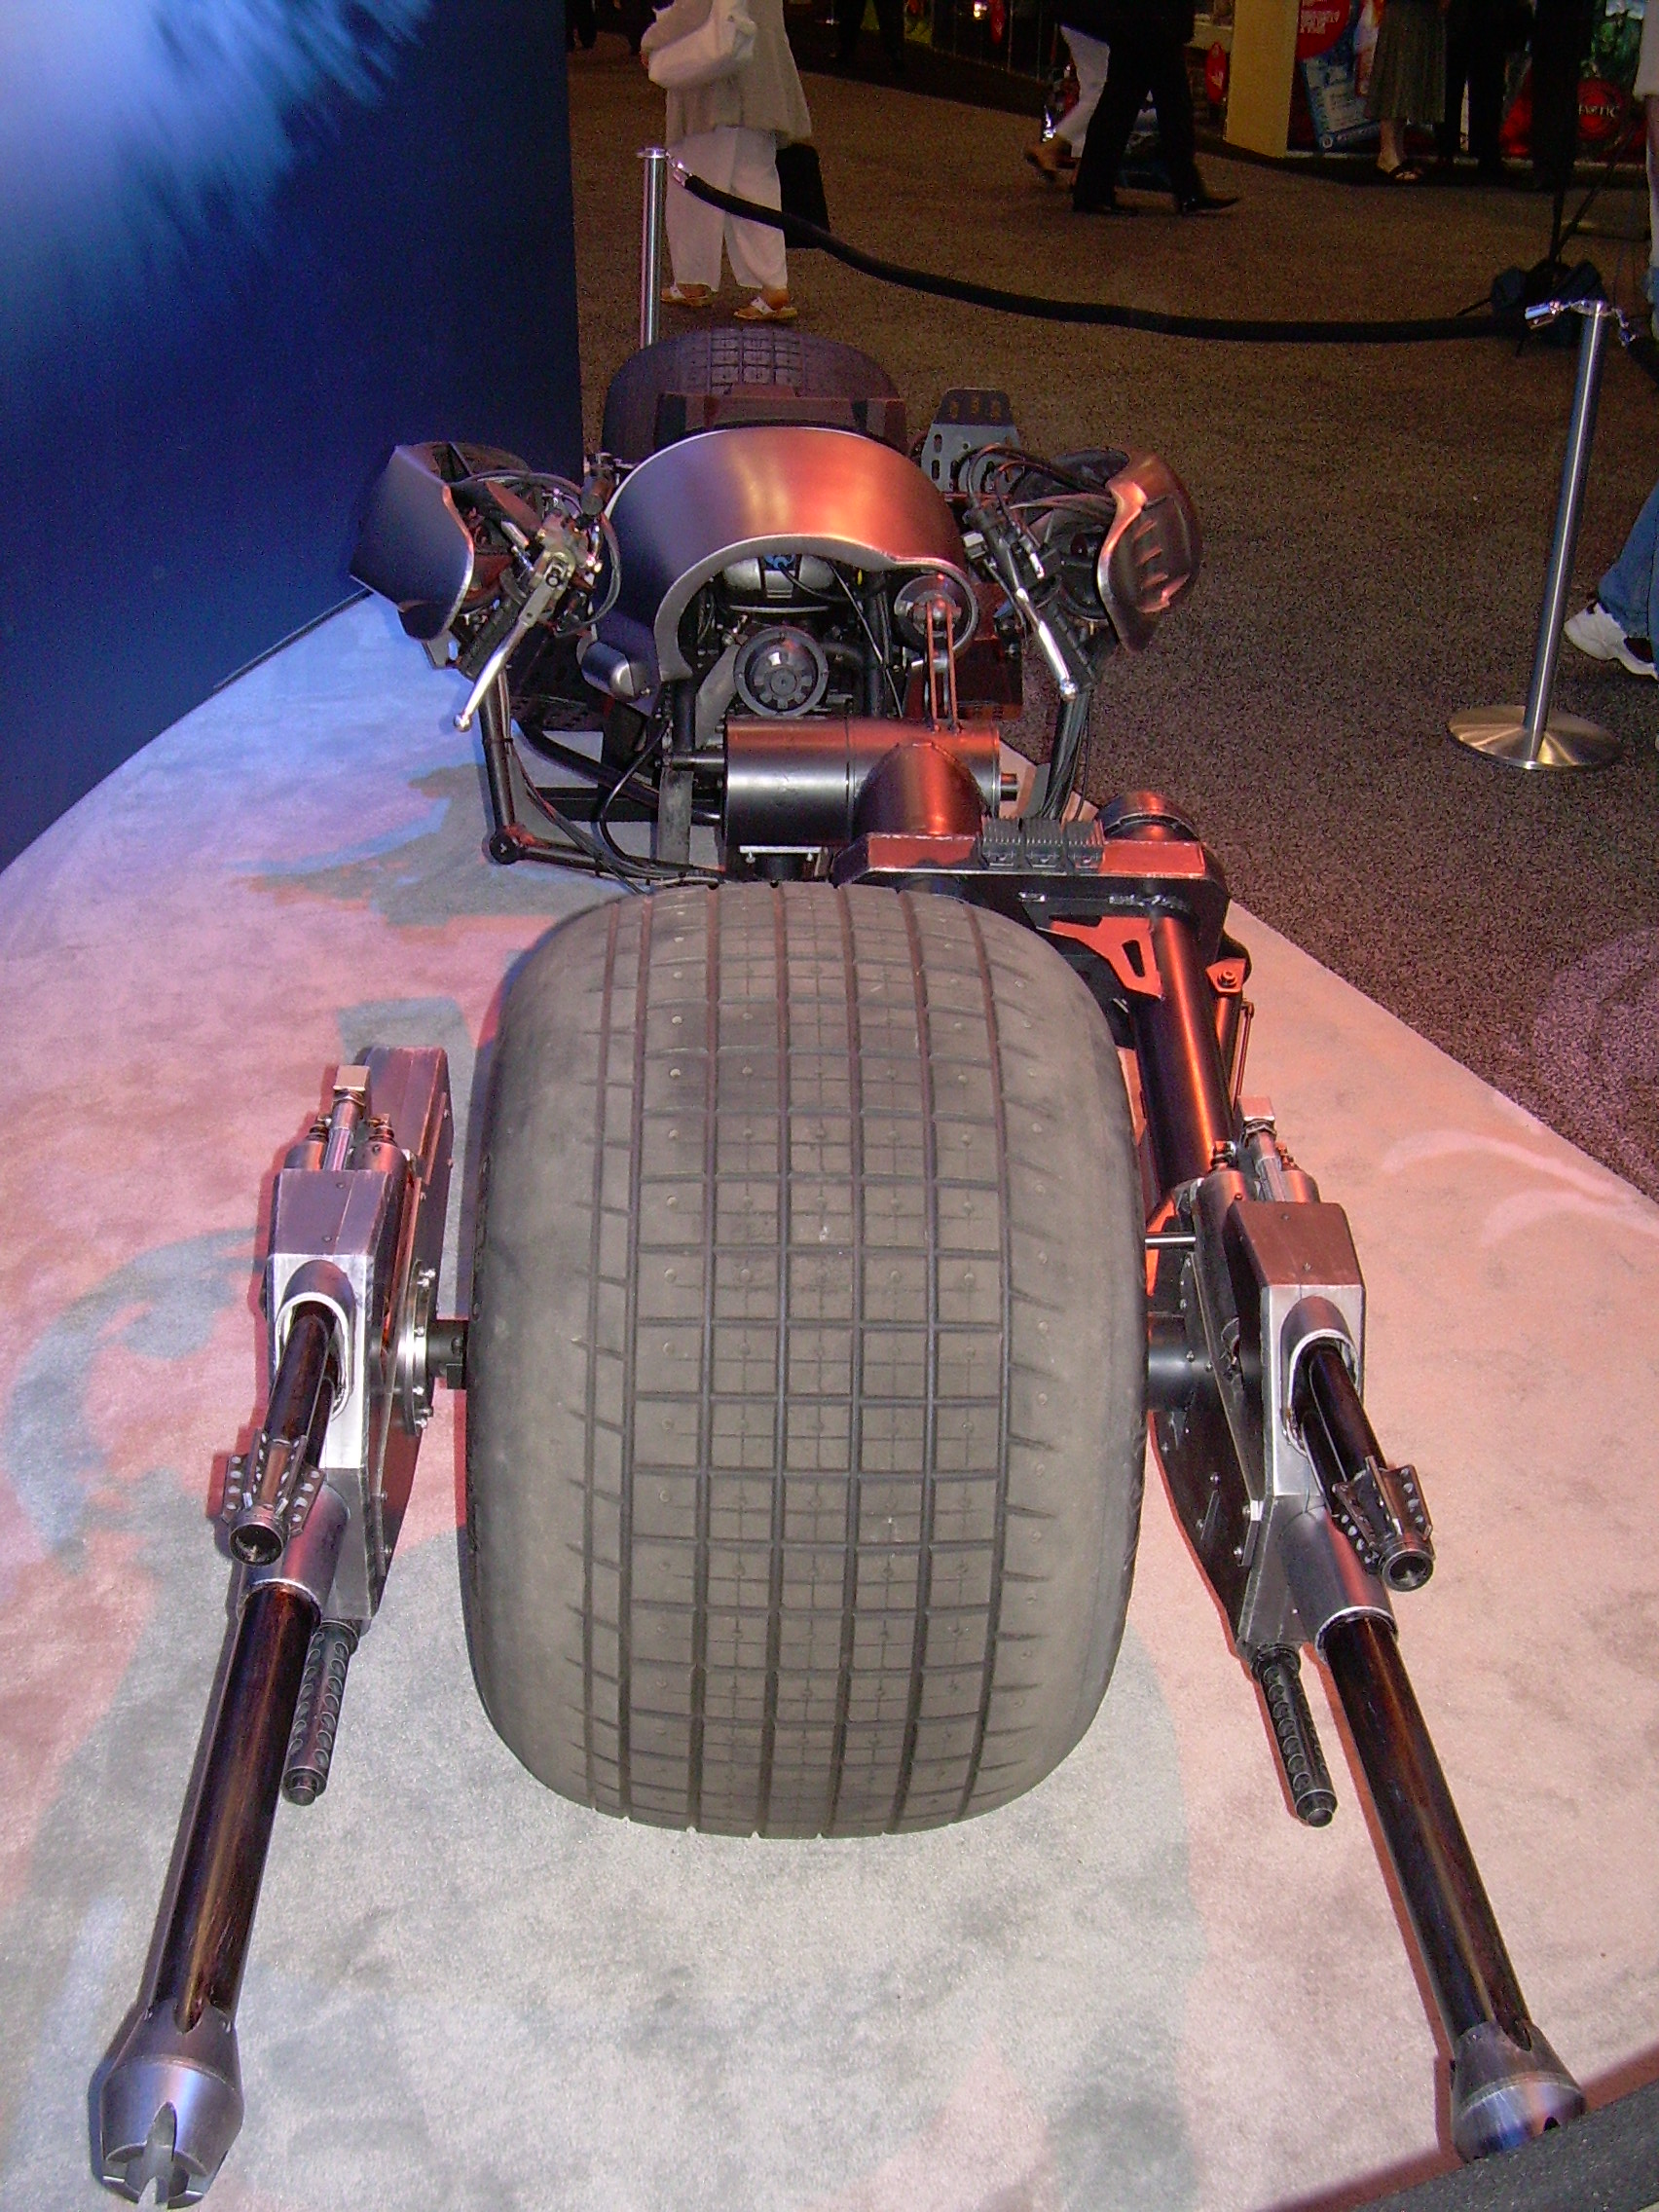 Updated With New Images High Res Pics Of That Damn Bat Pod A Motorheads Performance Classic Car News Wiring Nightmares Can Be Thank You Very Much Giant Penny We Appreciate Sending These In